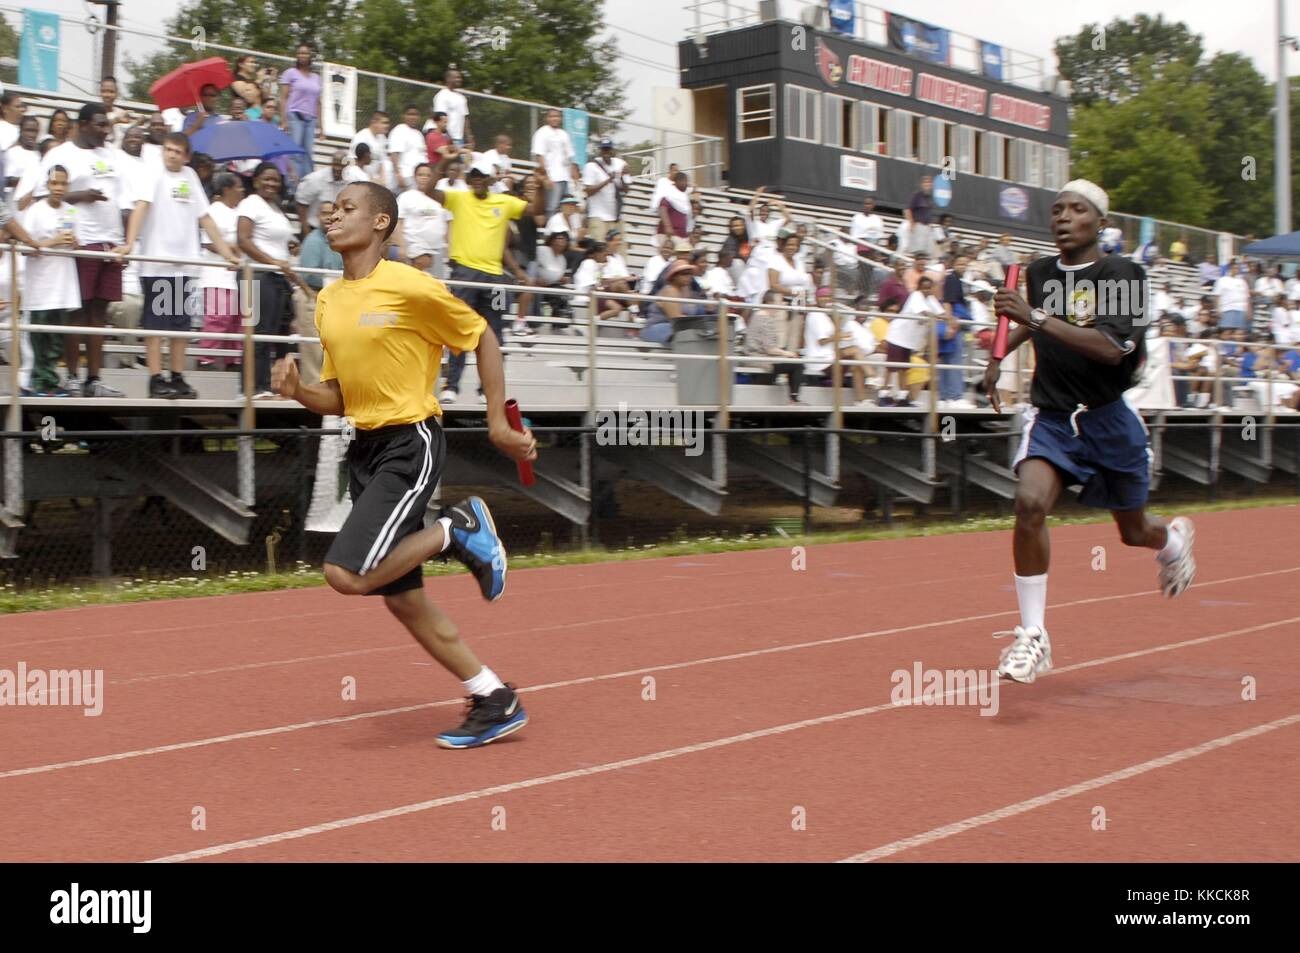 Runners at the 2012 Washington DC Special Olympics represent the US Navy and Army during a 4x100 meter relay race - Stock Image